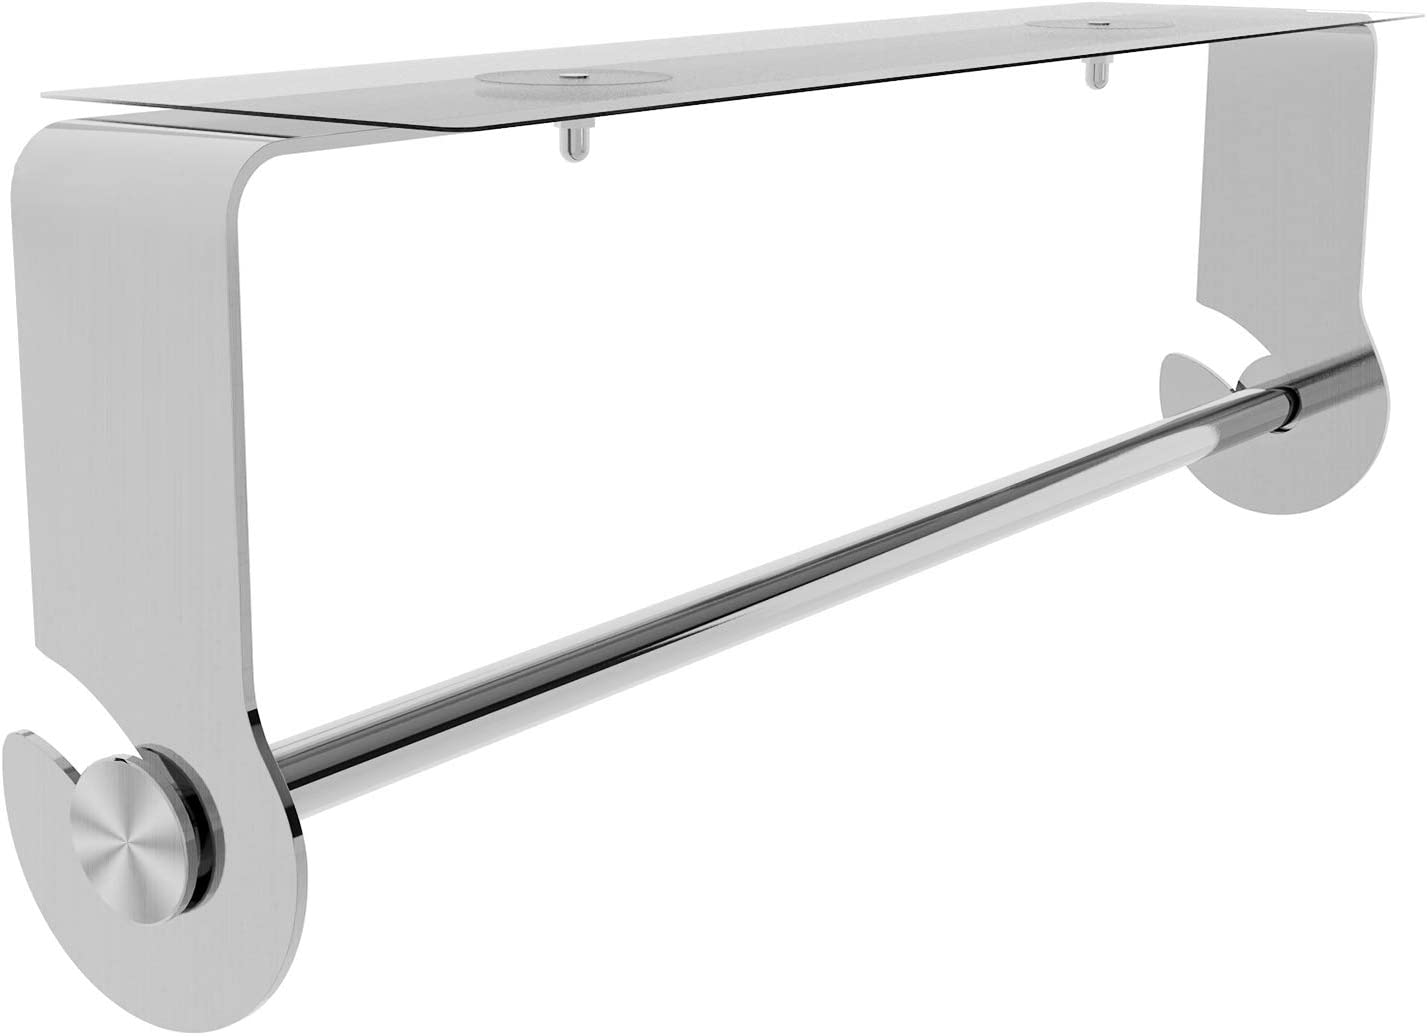 SMARTAKE Paper Towel Holder San Diego Mall with Wall Under Adhesive Mo Popular brand Cabinet